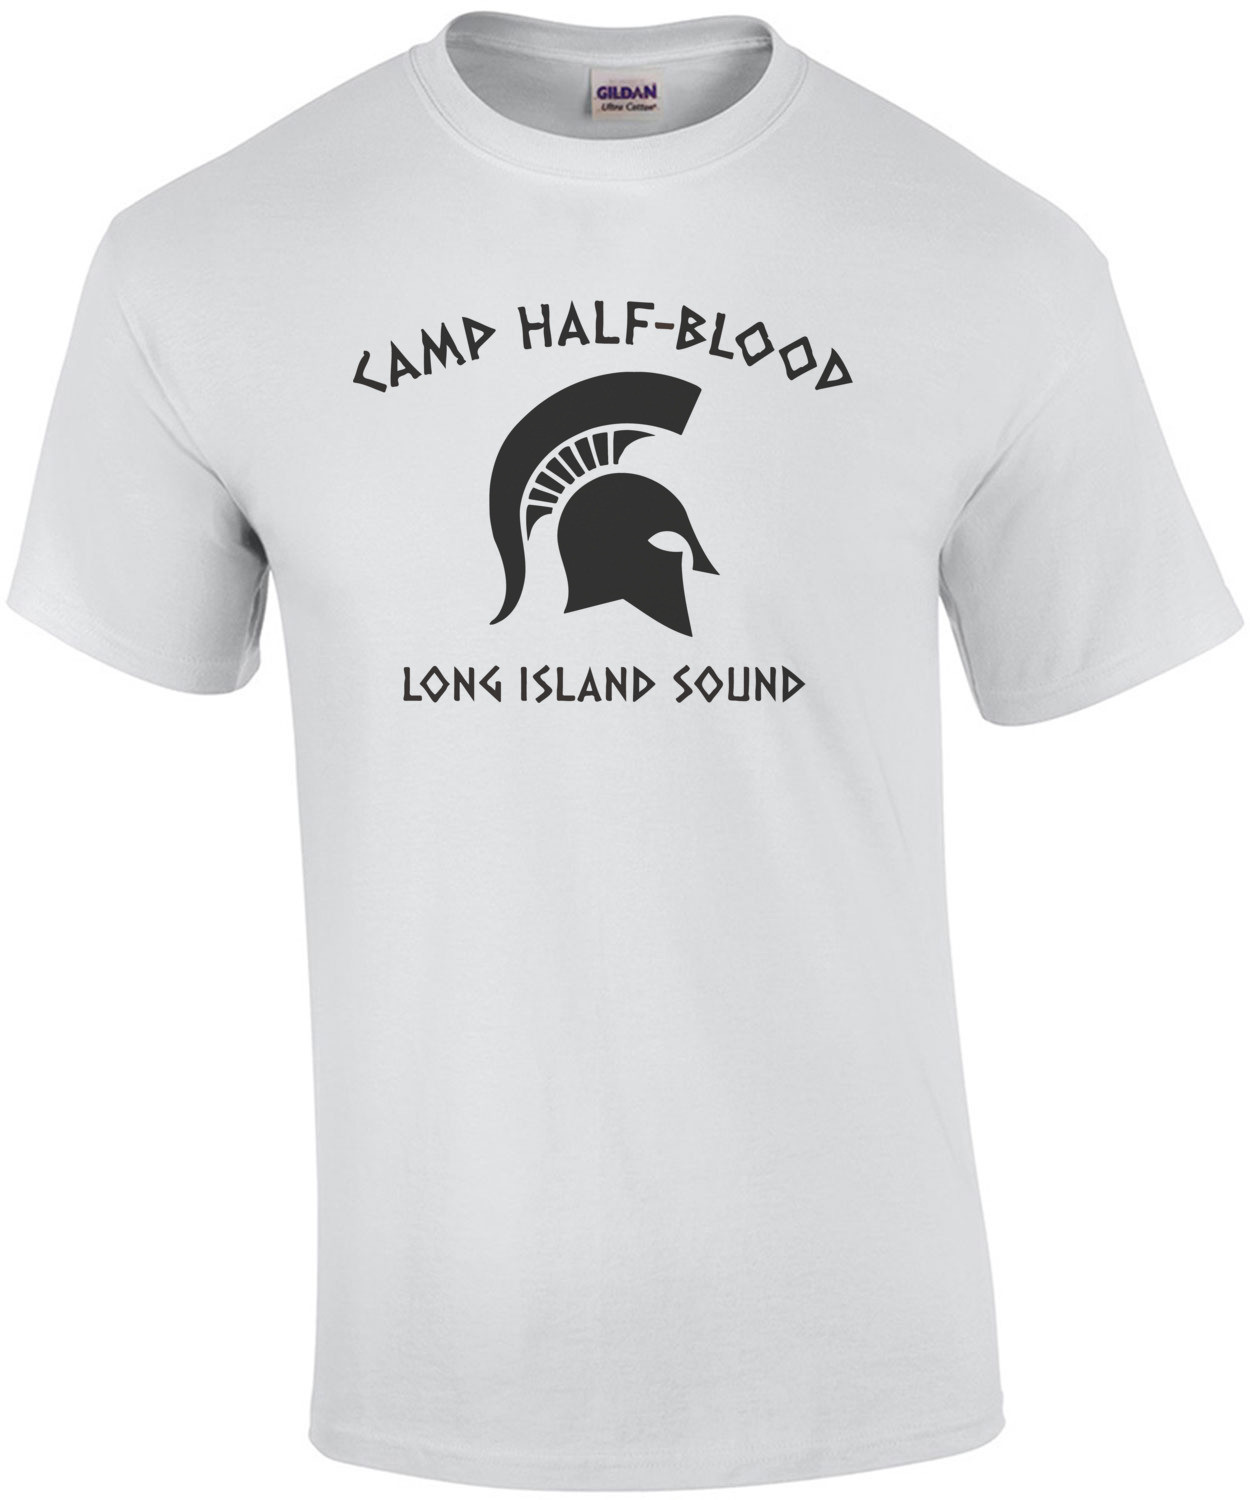 Camp Half-Blood Long Island Sound T-Shirt